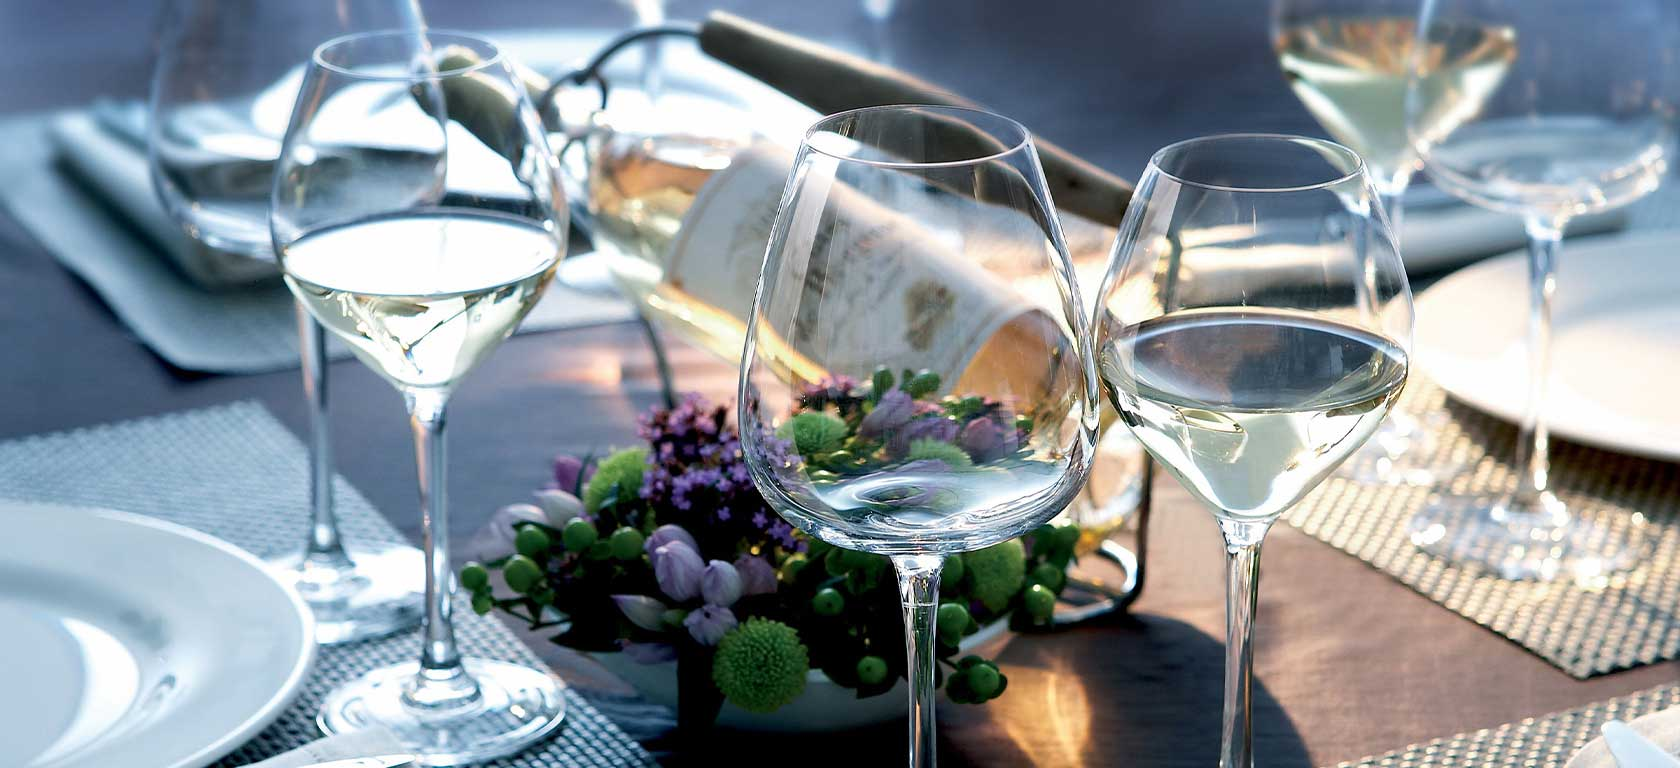 Delicate looking empty wine glasses in a tastefully decorated table.